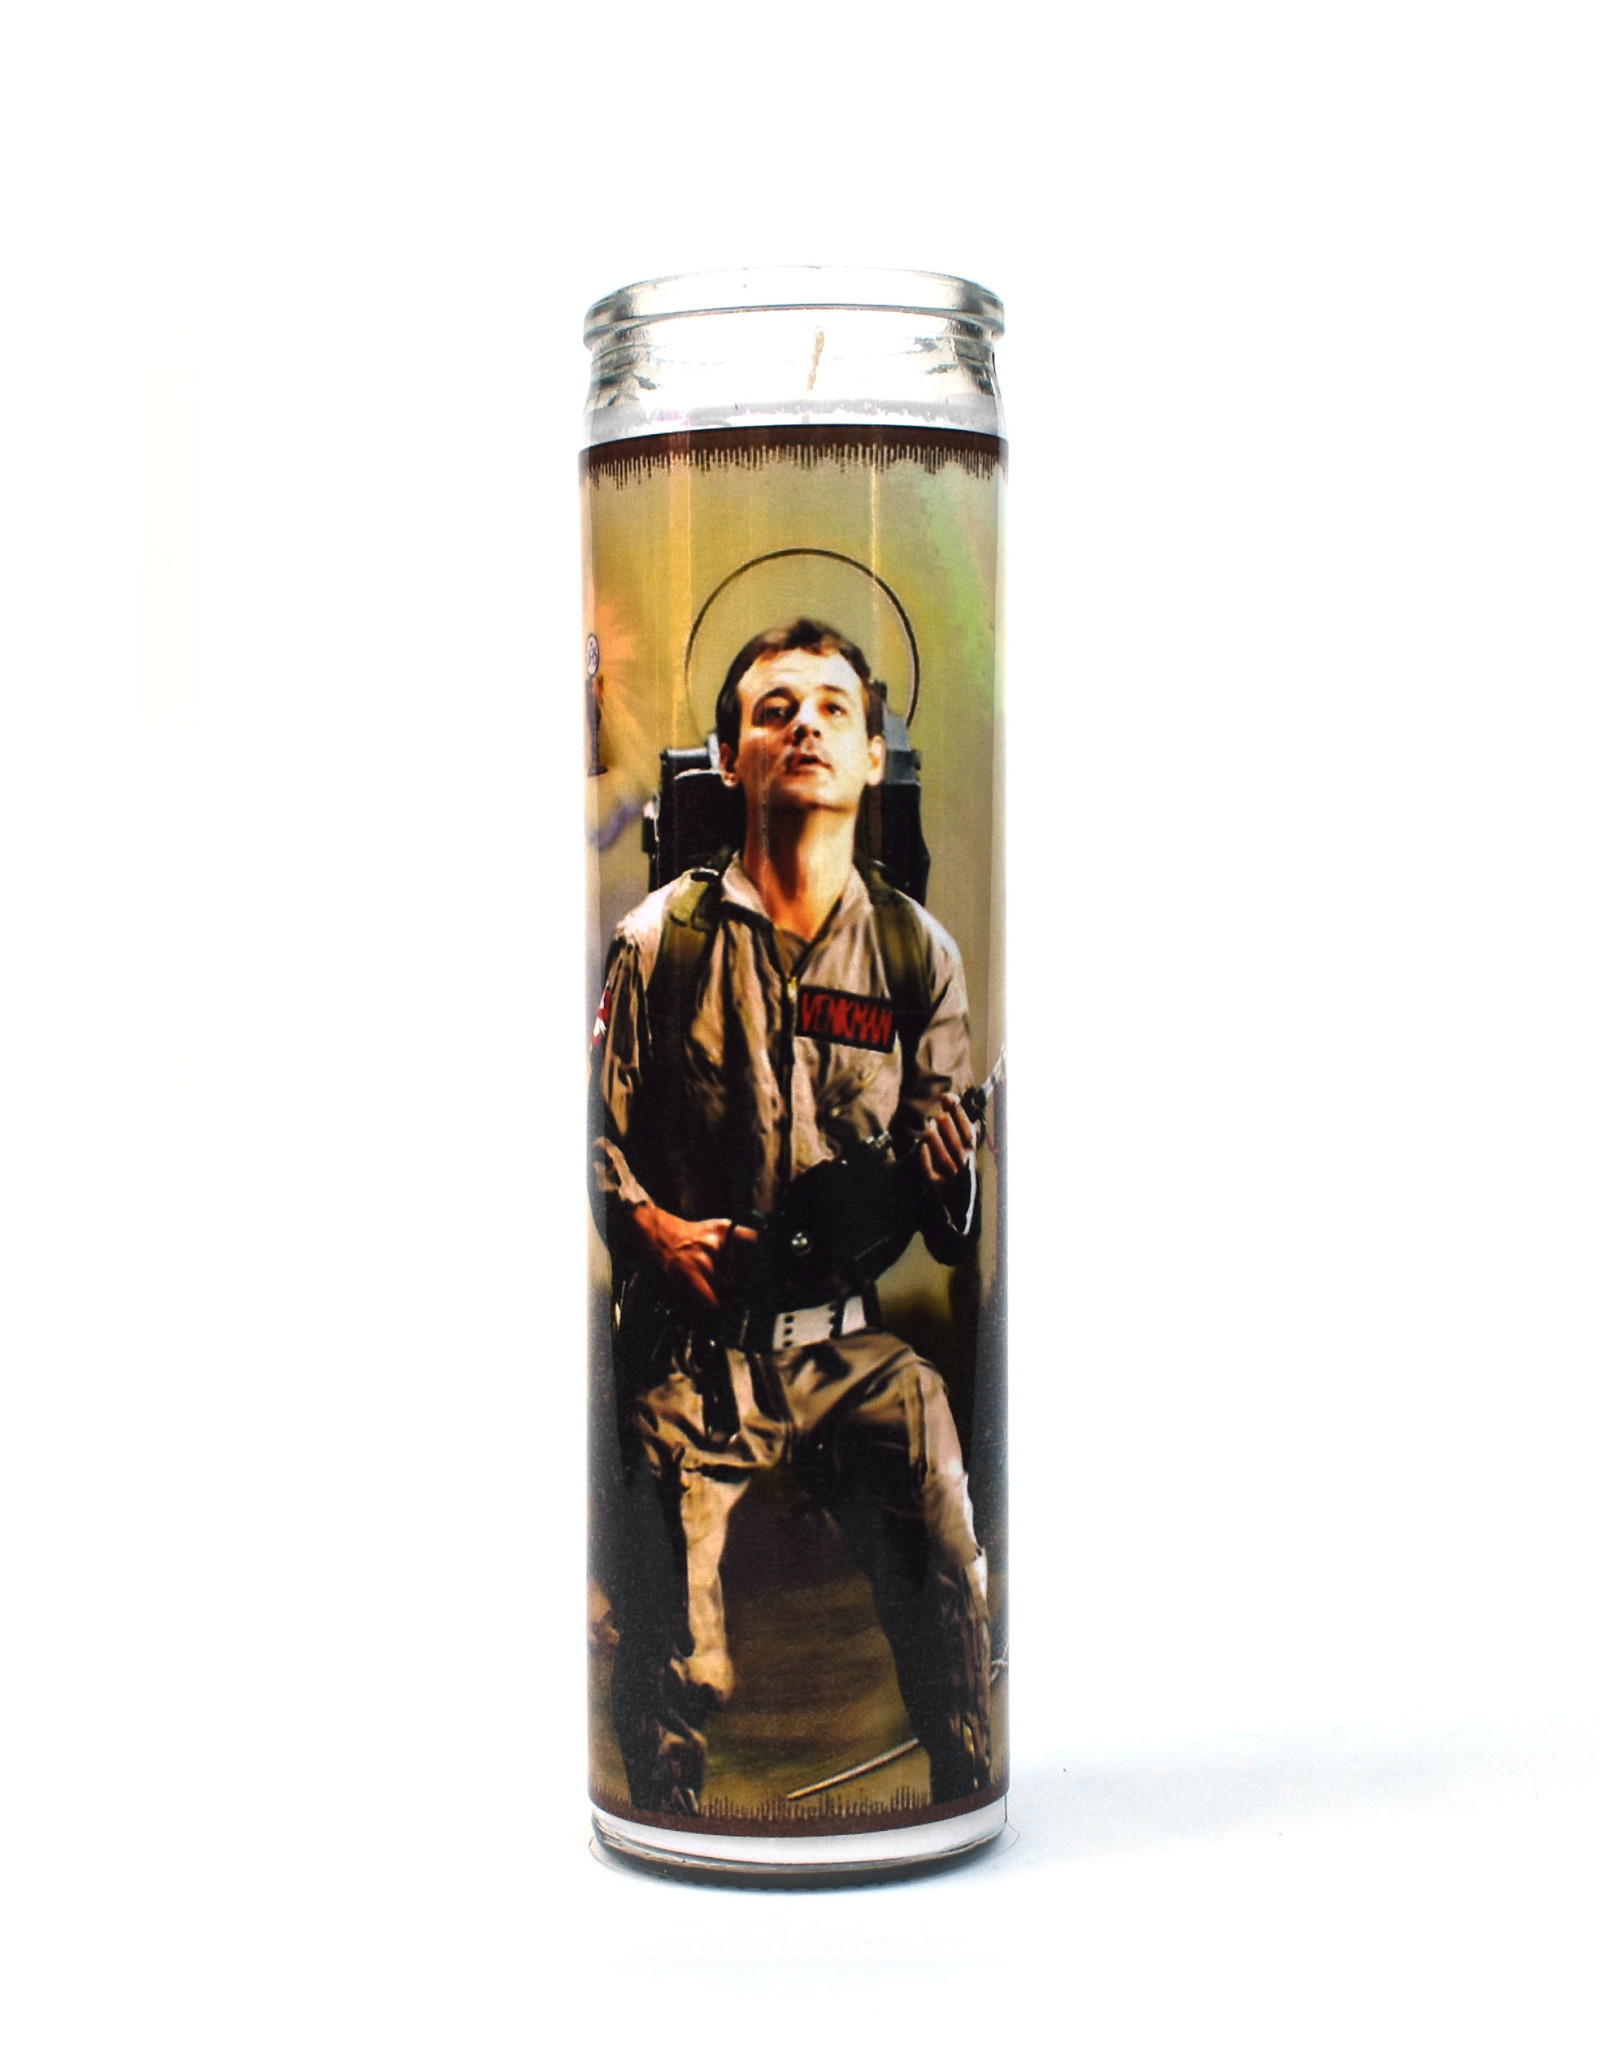 St. Bill Murray (Ghostbusters) Prayer Candle